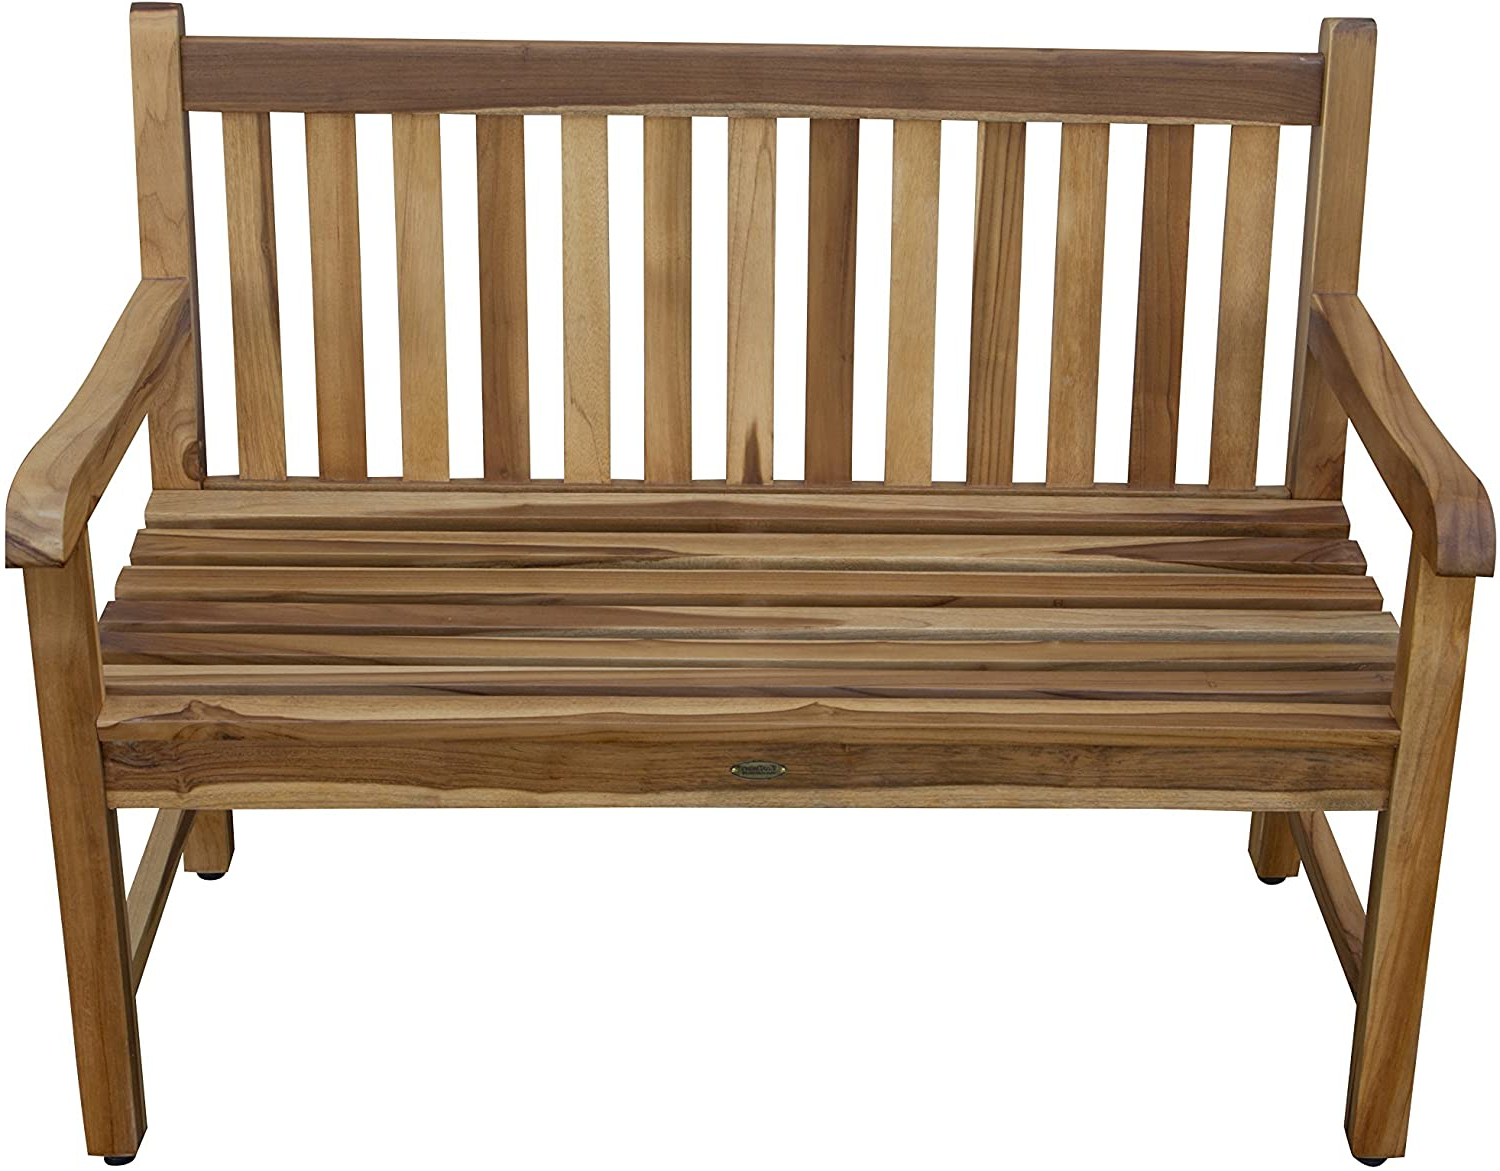 Hampstead Teak Garden Benches Intended For Well Known Ecodecors Od 1304 Hampstead Heath Garden Outdoor Bench, 47x26x36, Natural Teak (View 8 of 30)